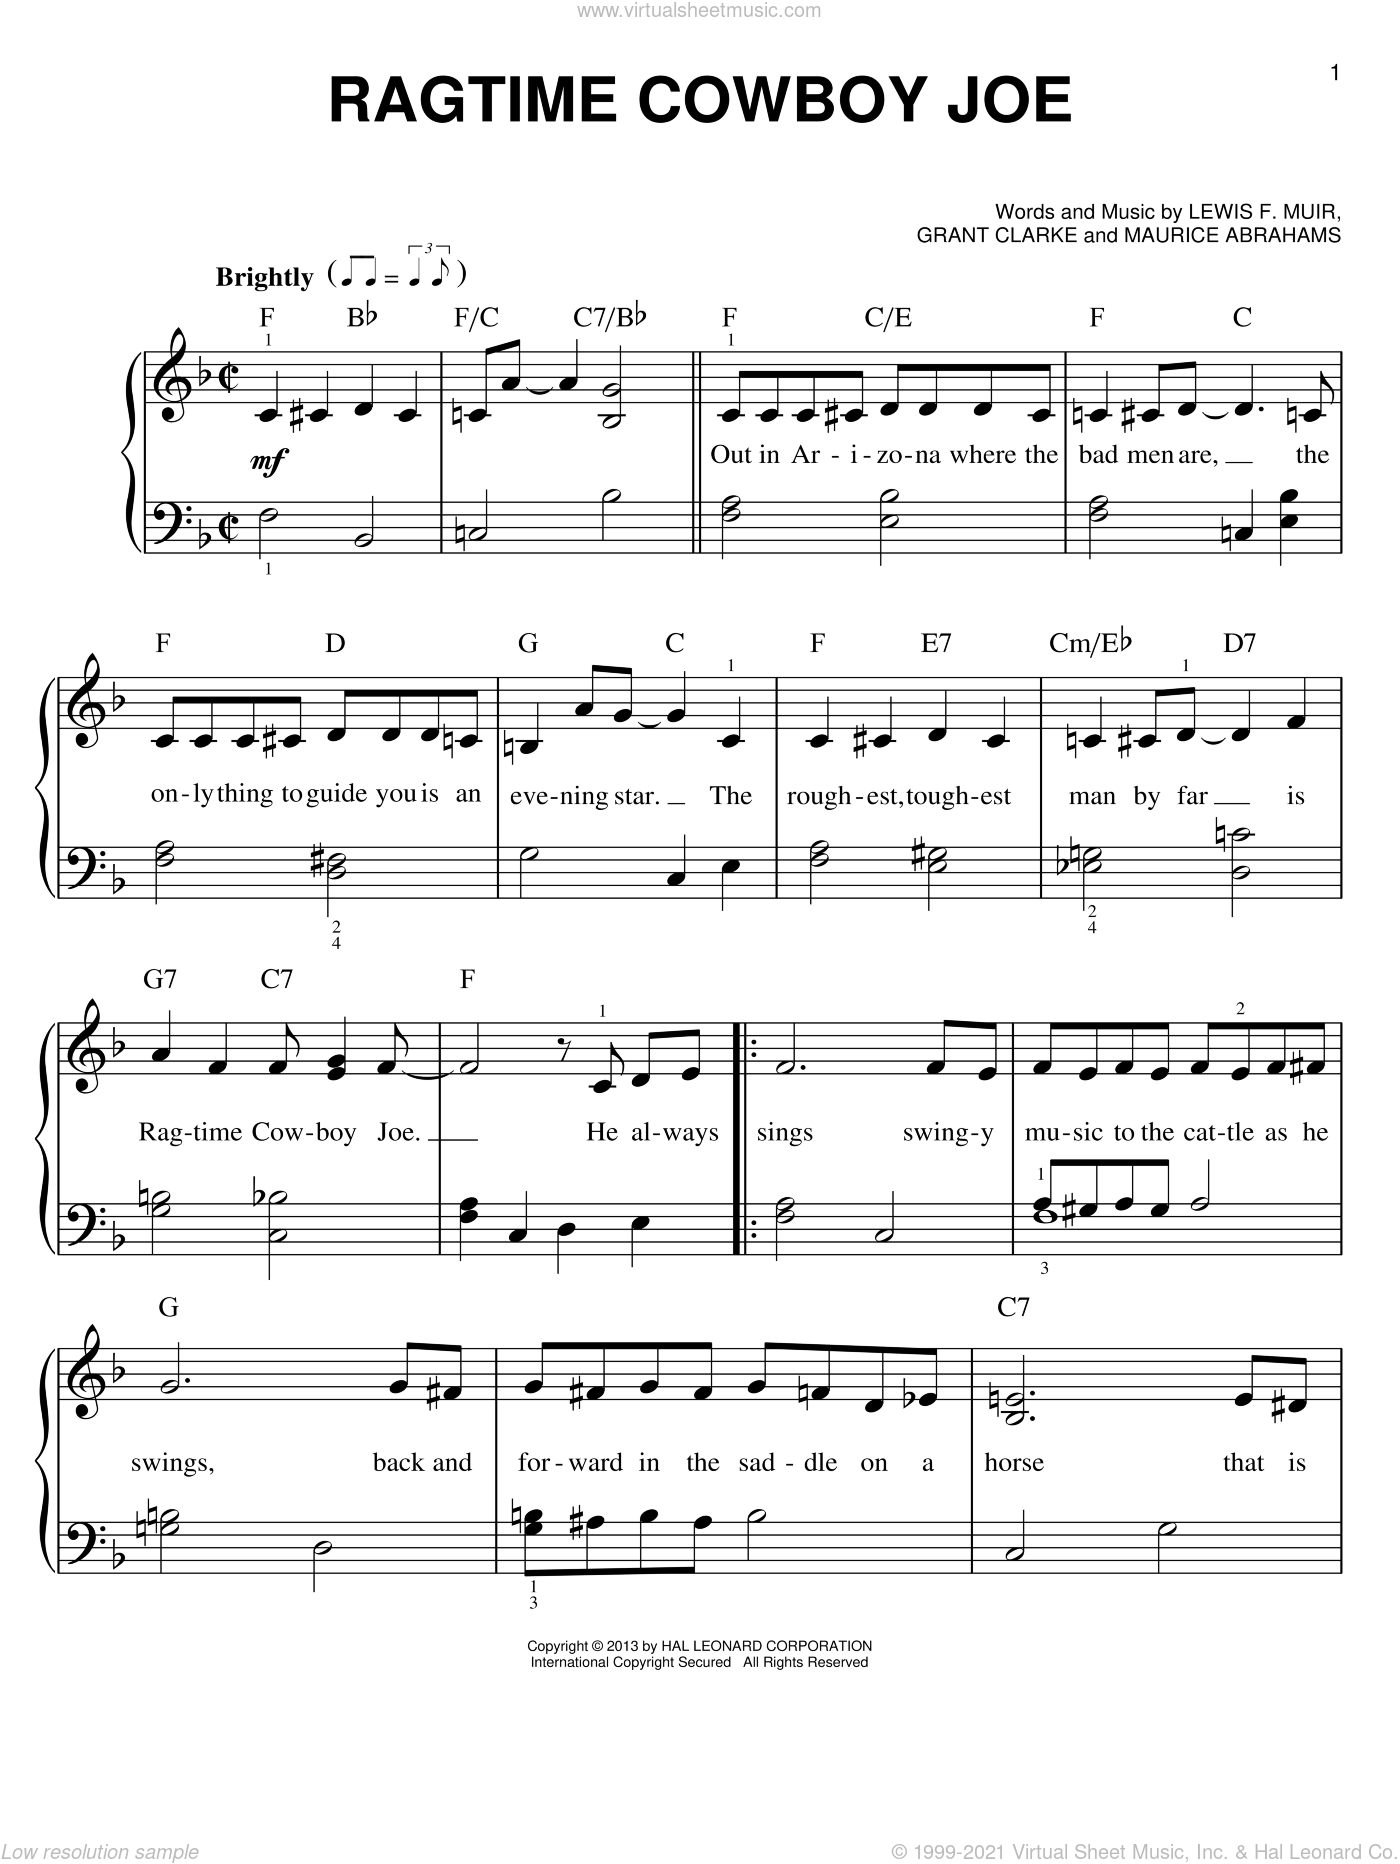 Ragtime Cowboy Joe sheet music for piano solo by Belle Baker, Grant Clarke and Lewis F. Muir, easy piano. Score Image Preview.